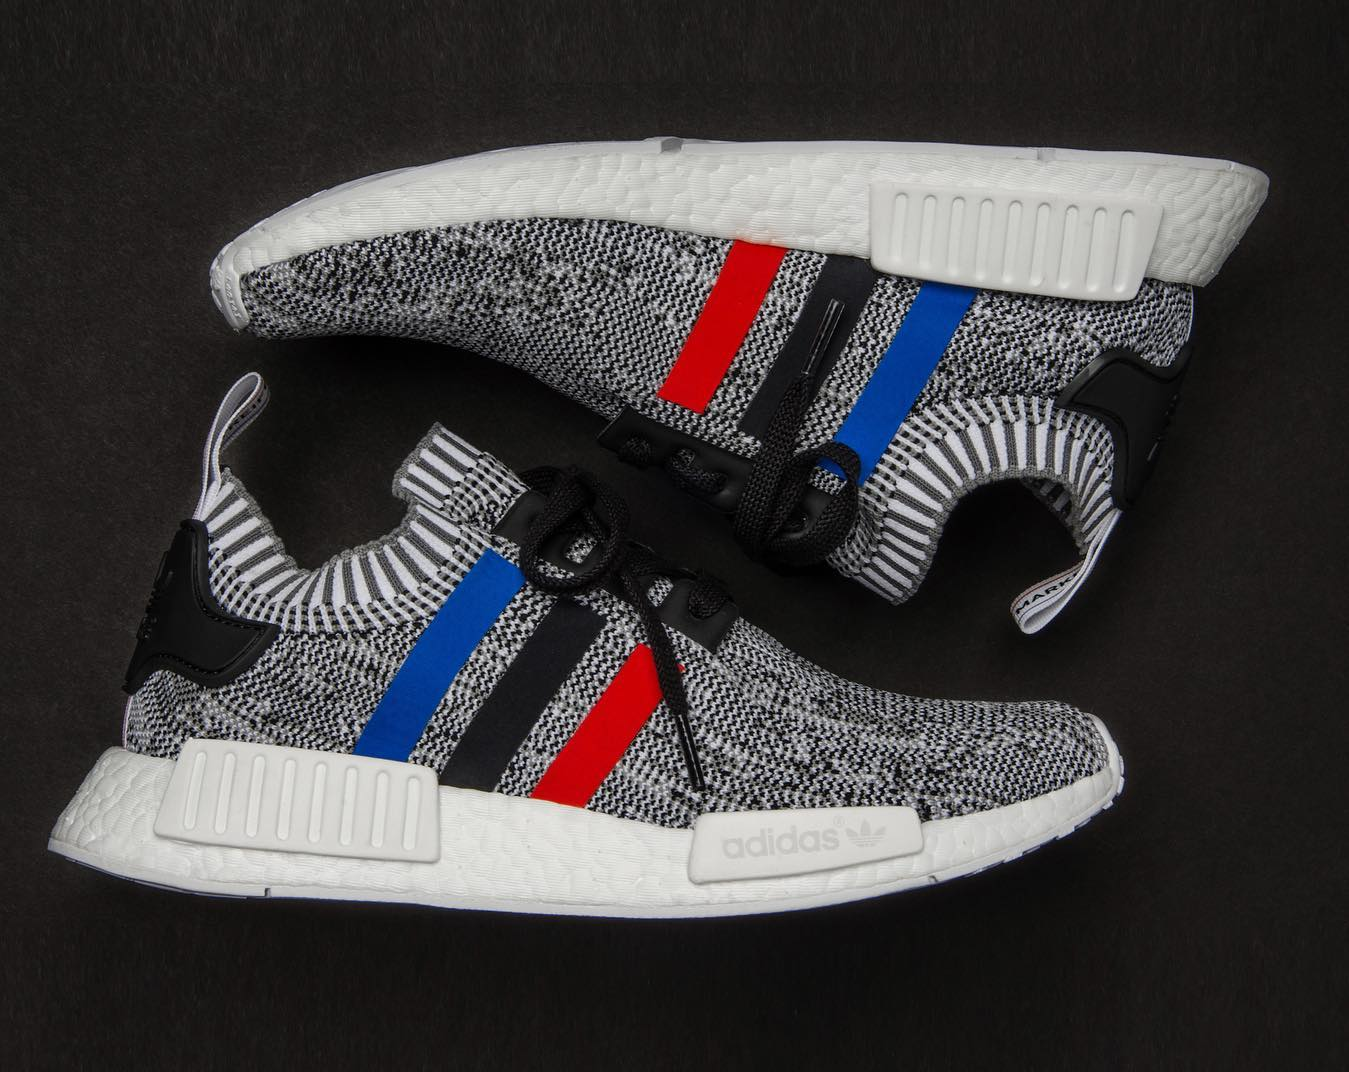 adidas-nmd-tri-color_02